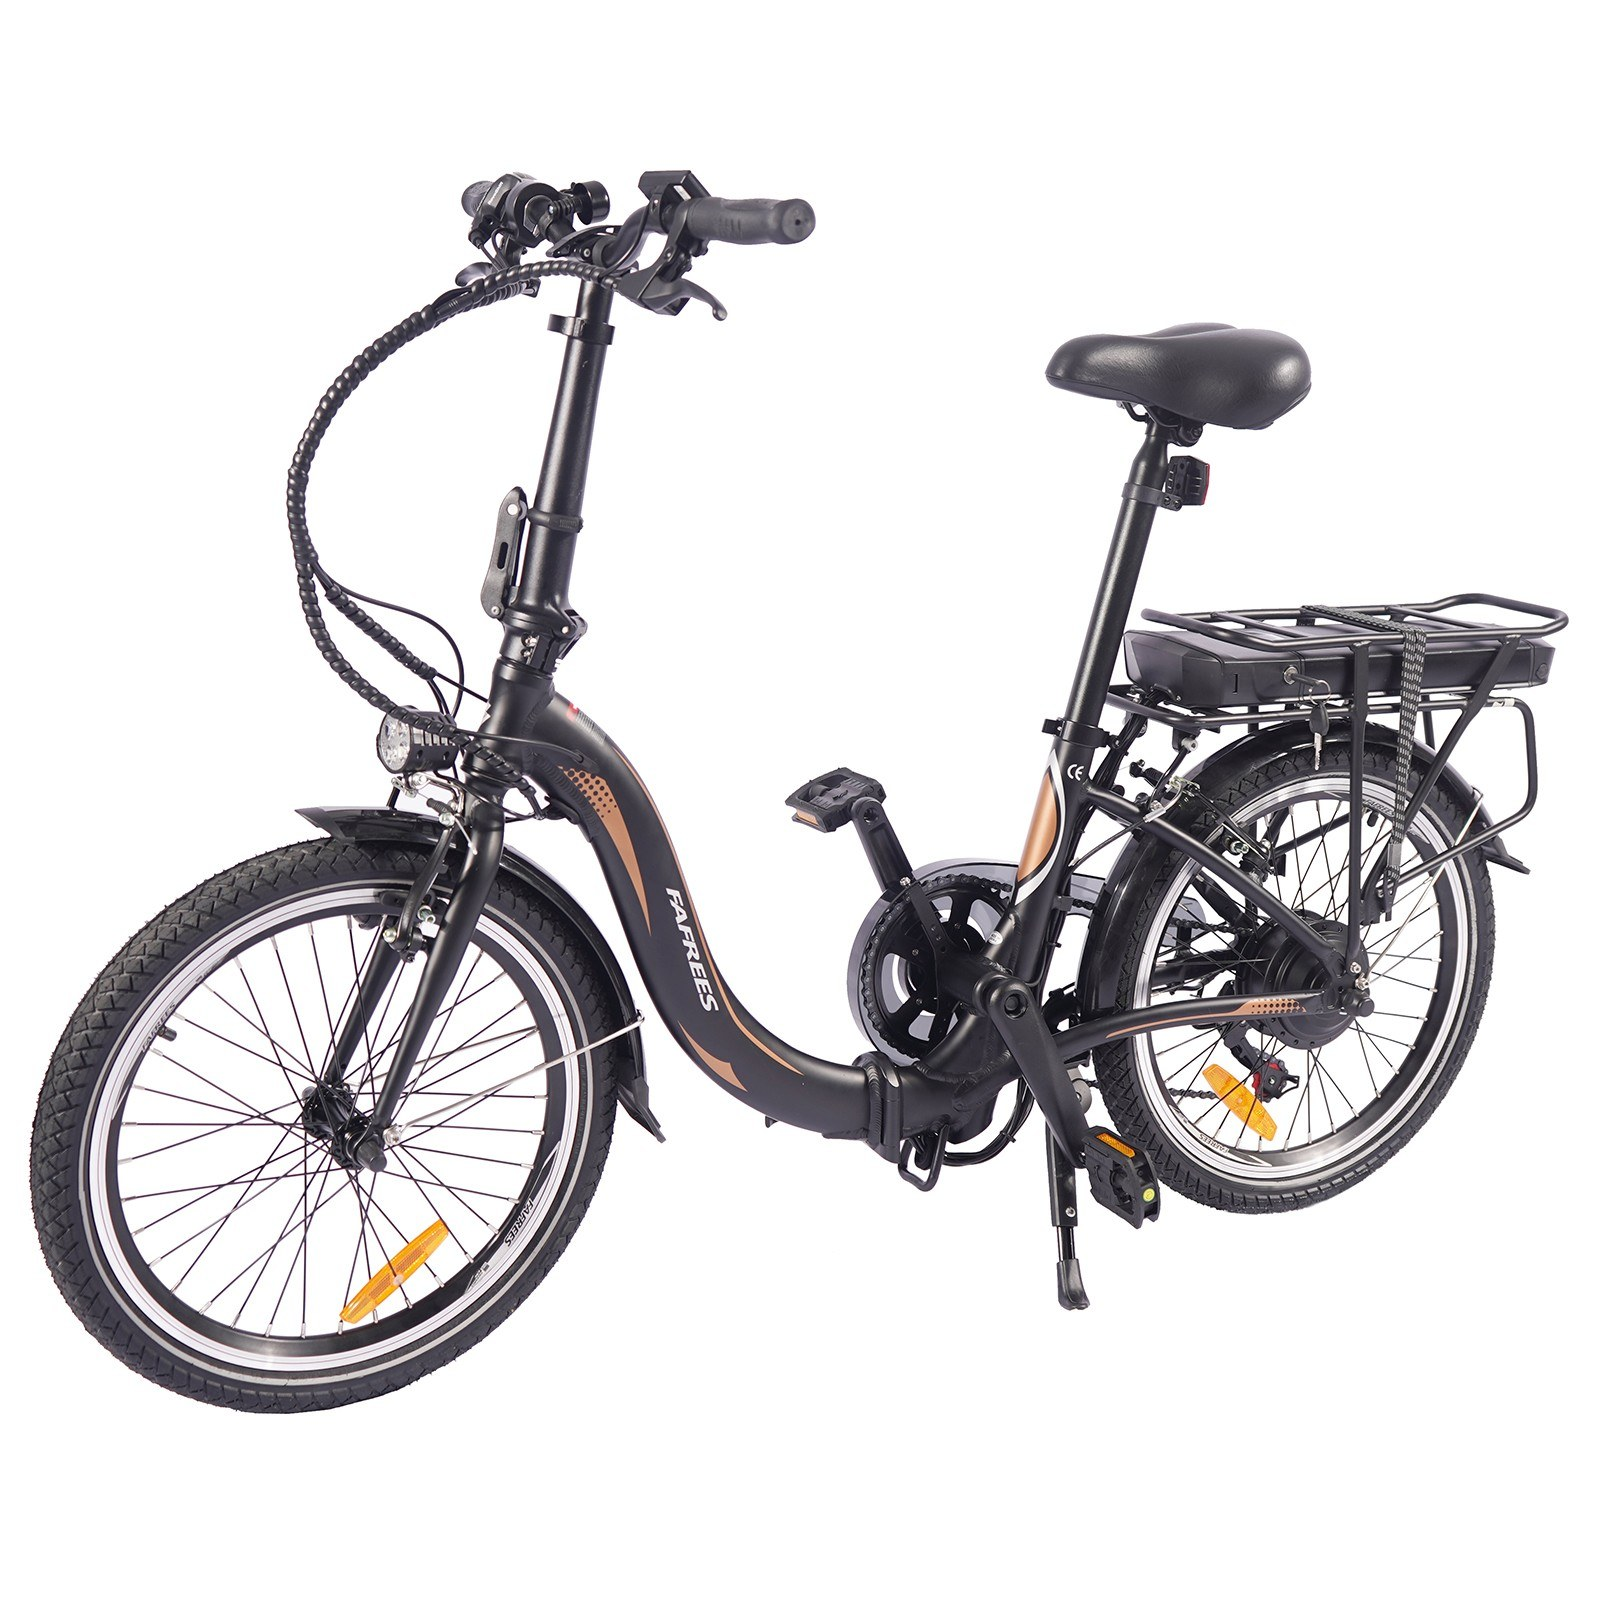 tomtop.com - [EU Warehouse]  Fafrees 20F054 250W 20 Inch Folding Electric Bicycle, $878.81 (Inclusive of VAT)